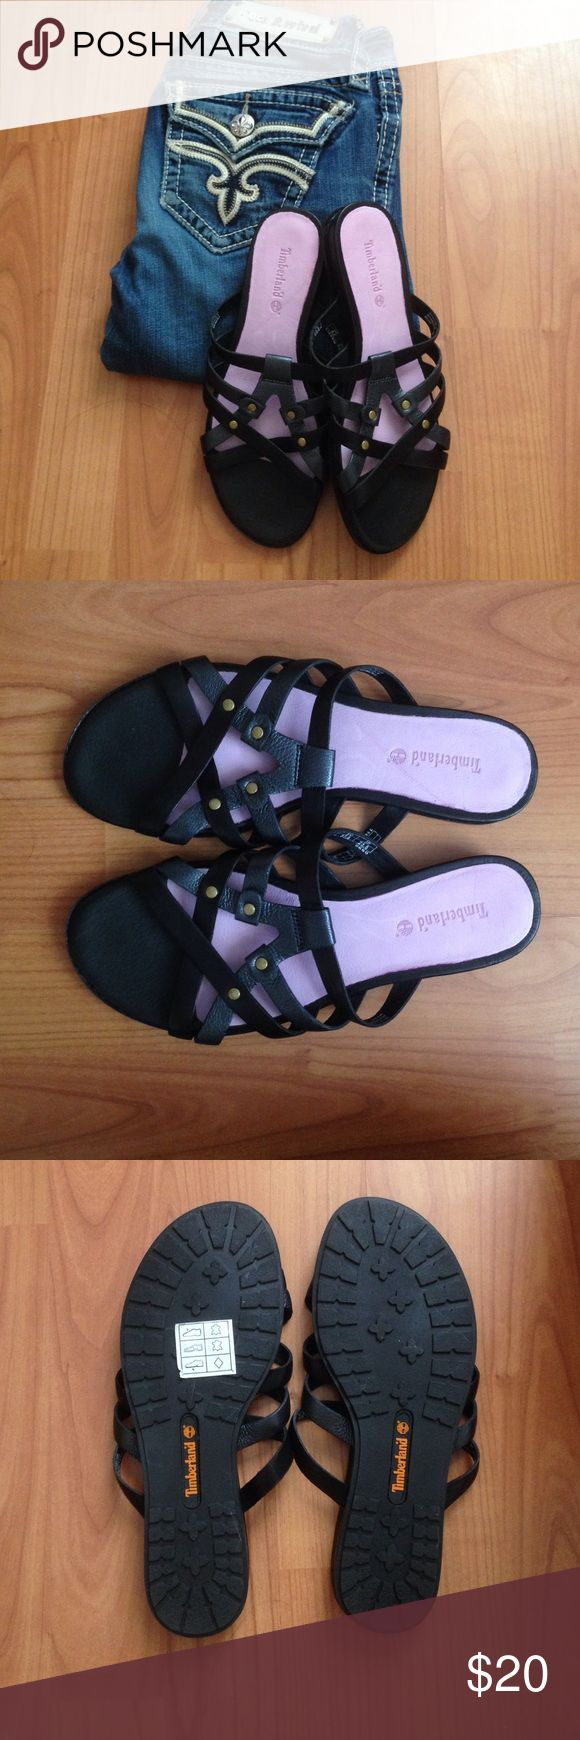 Timberland sandals Timberland black slides, never worn. Timberland Shoes Sandals